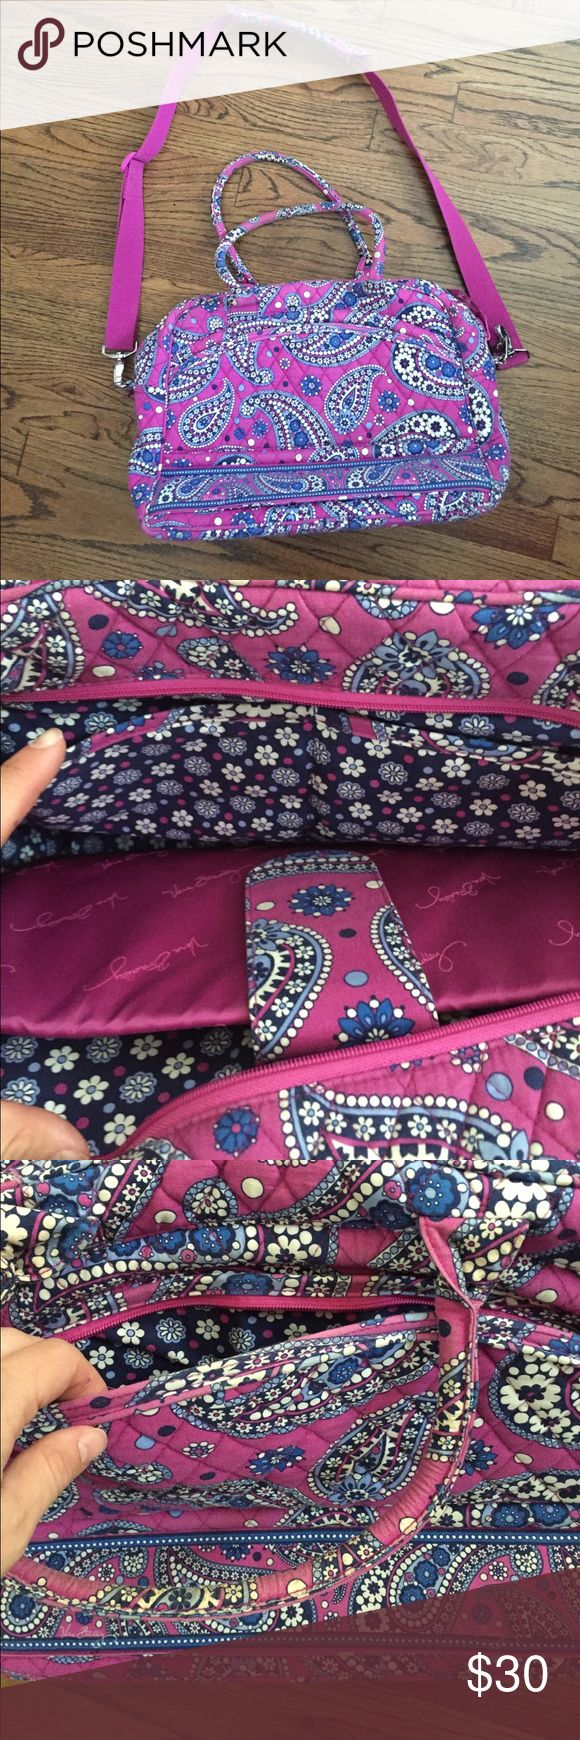 Vera Bradley Laptop Case Great used condition. No rips, tears, or stains. Padded sleeve for laptop. Will fit most laptops. 15 x 10 x 6 Vera Bradley Bags Laptop Bags